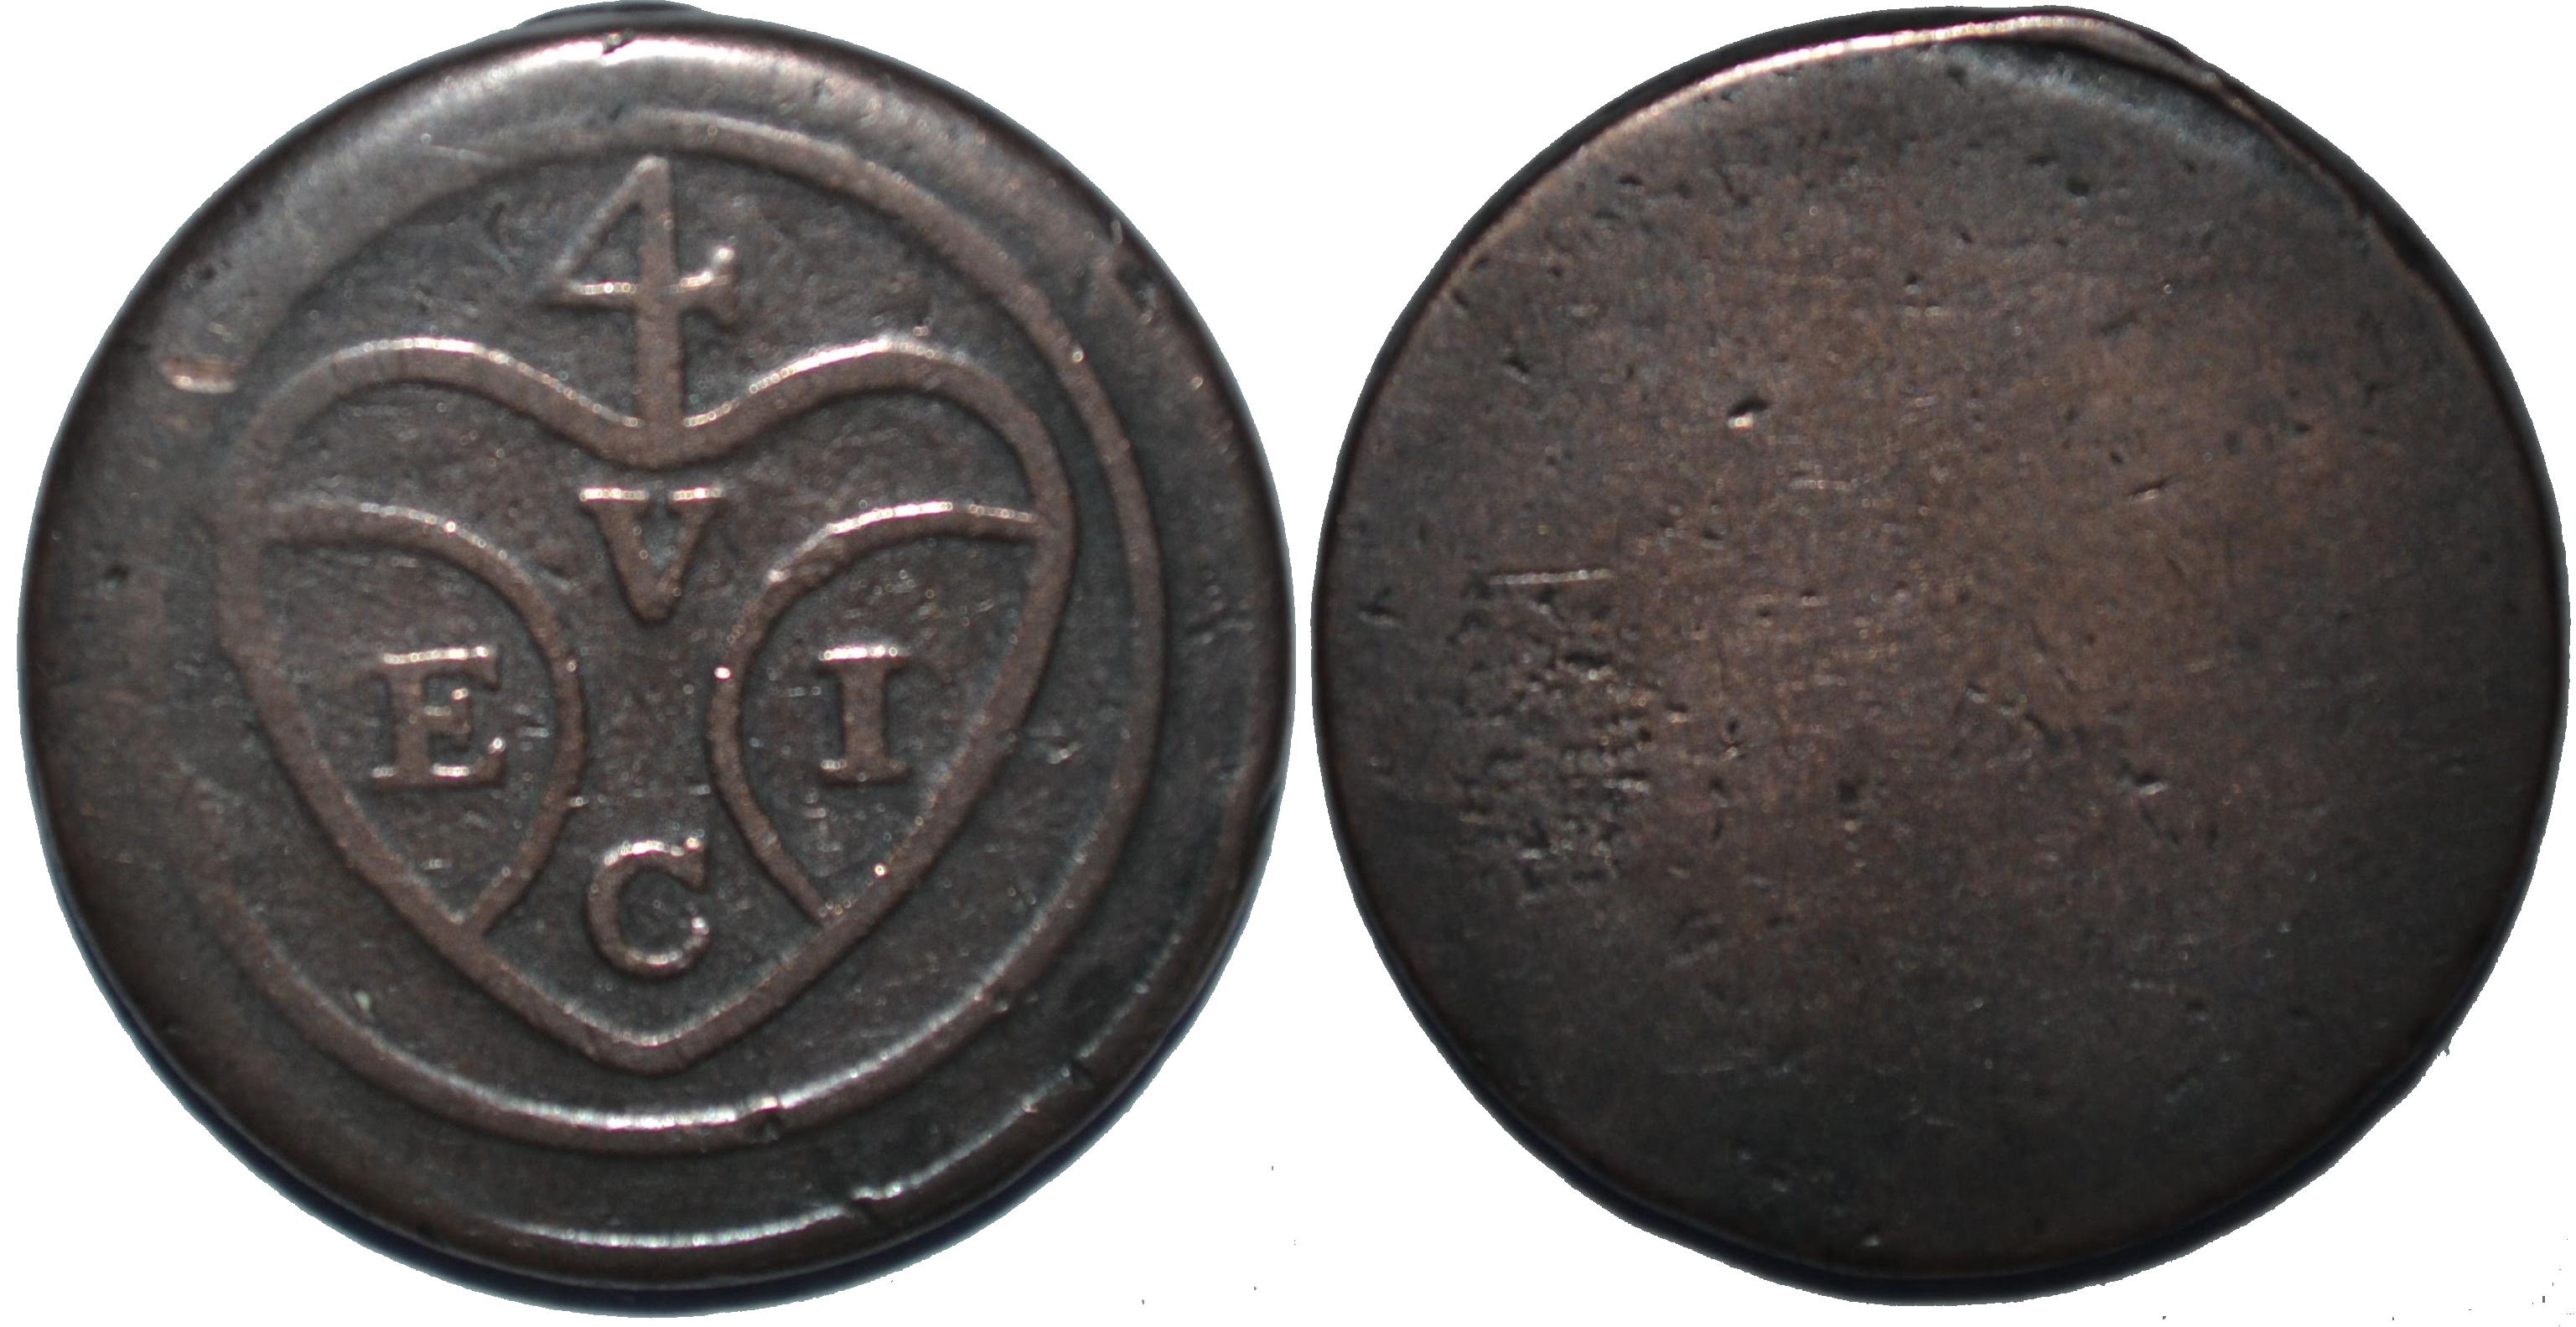 Unnamed and undated Uniface 1 Pice coin, minted on short notice at Calcutta, 1786, for Captain Francis Light's expedition to Penang Island.